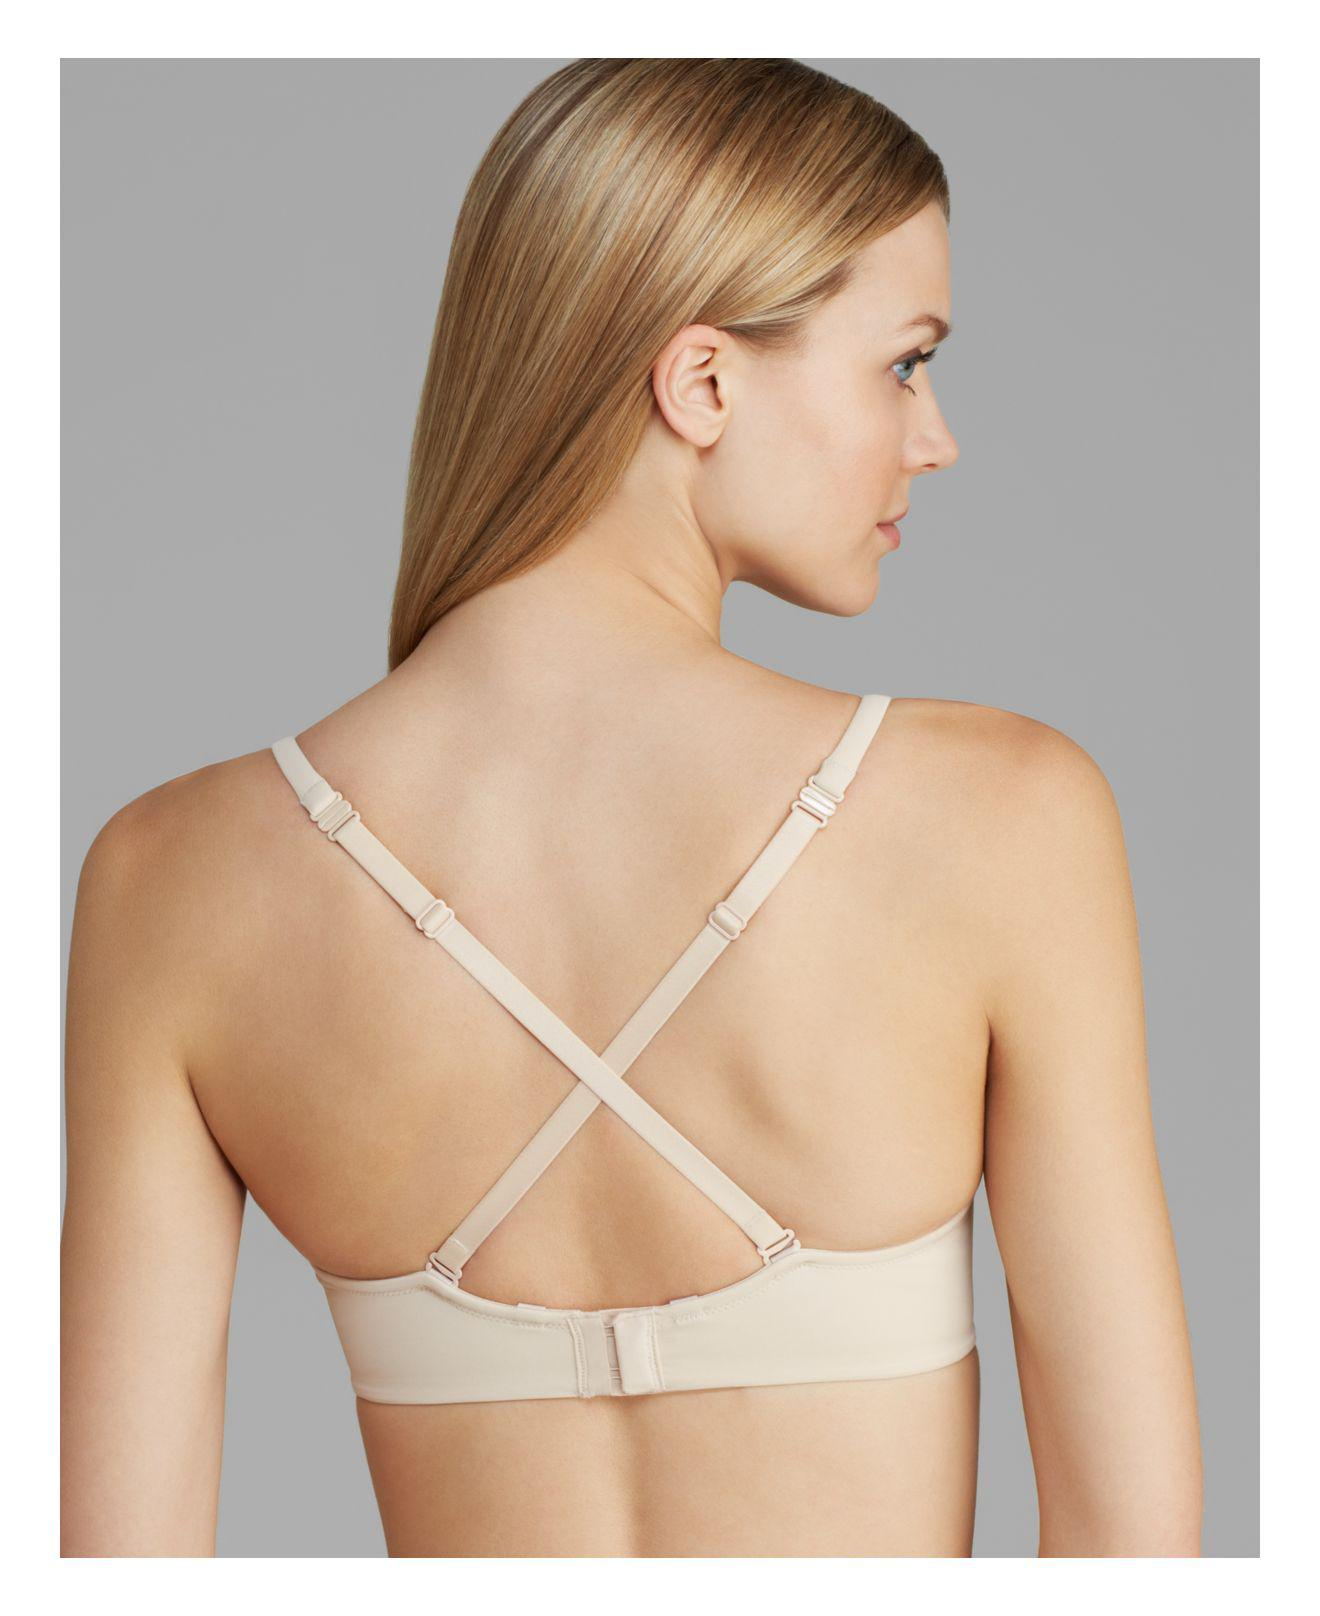 80b81bd31d Le Mystere Infinite Possibilities Convertible Push-up Contour Bra in ...